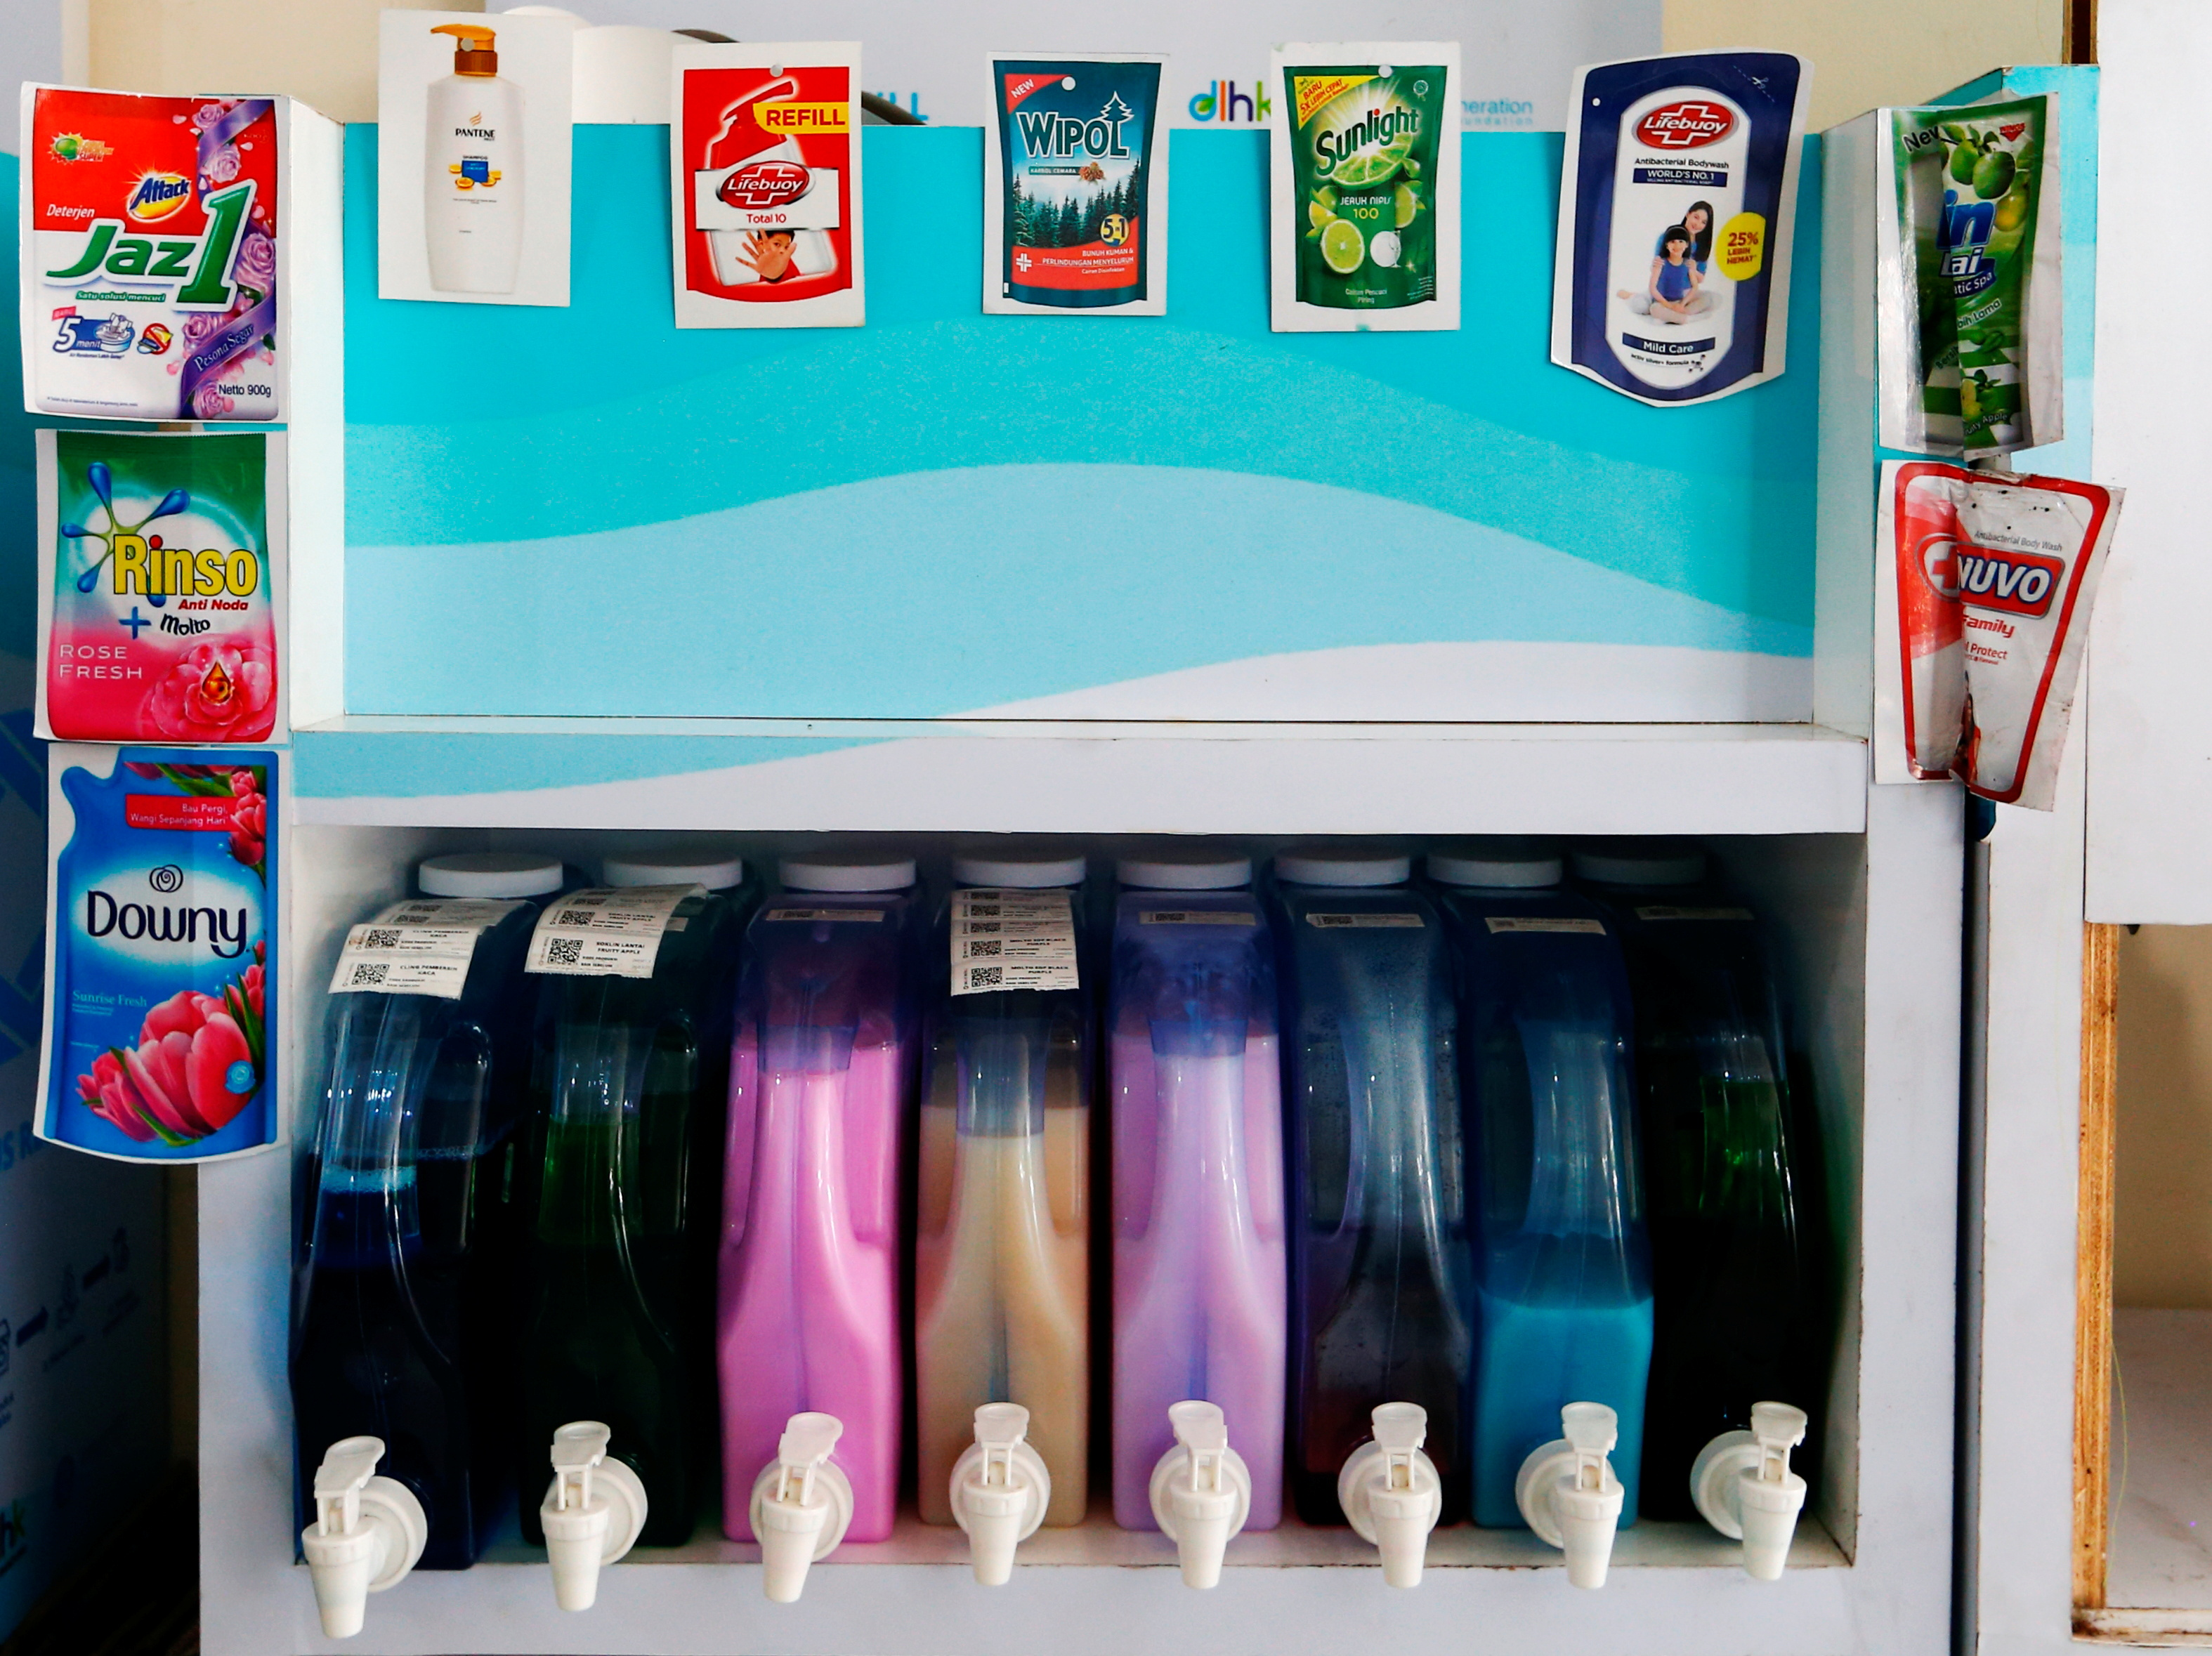 Dispensers containing cleaning liquids are seen at a Siklus office, a start-up company which refills household products in a bid to reduce plastic waste, in Jakarta, Indonesia, May 19, 2021. Picture taken May 19, 2021 REUTERS/Ajeng Dinar Ulfiana